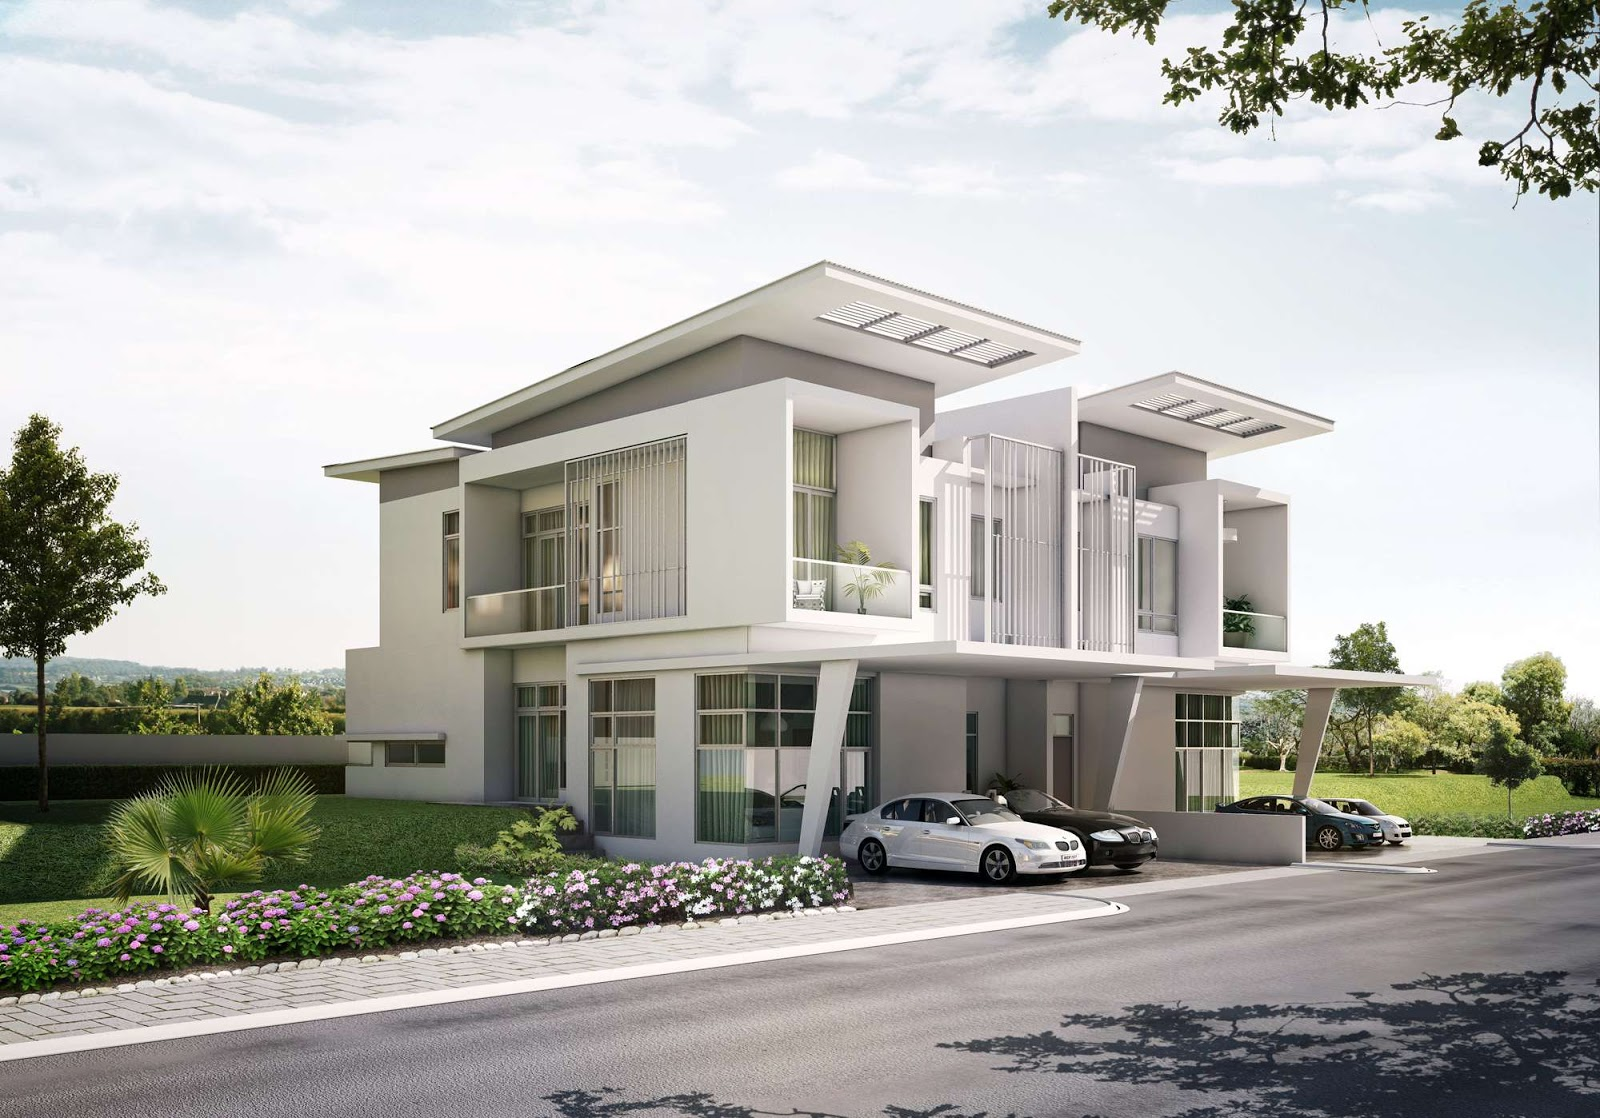 New home designs latest singapore modern homes exterior for External design house